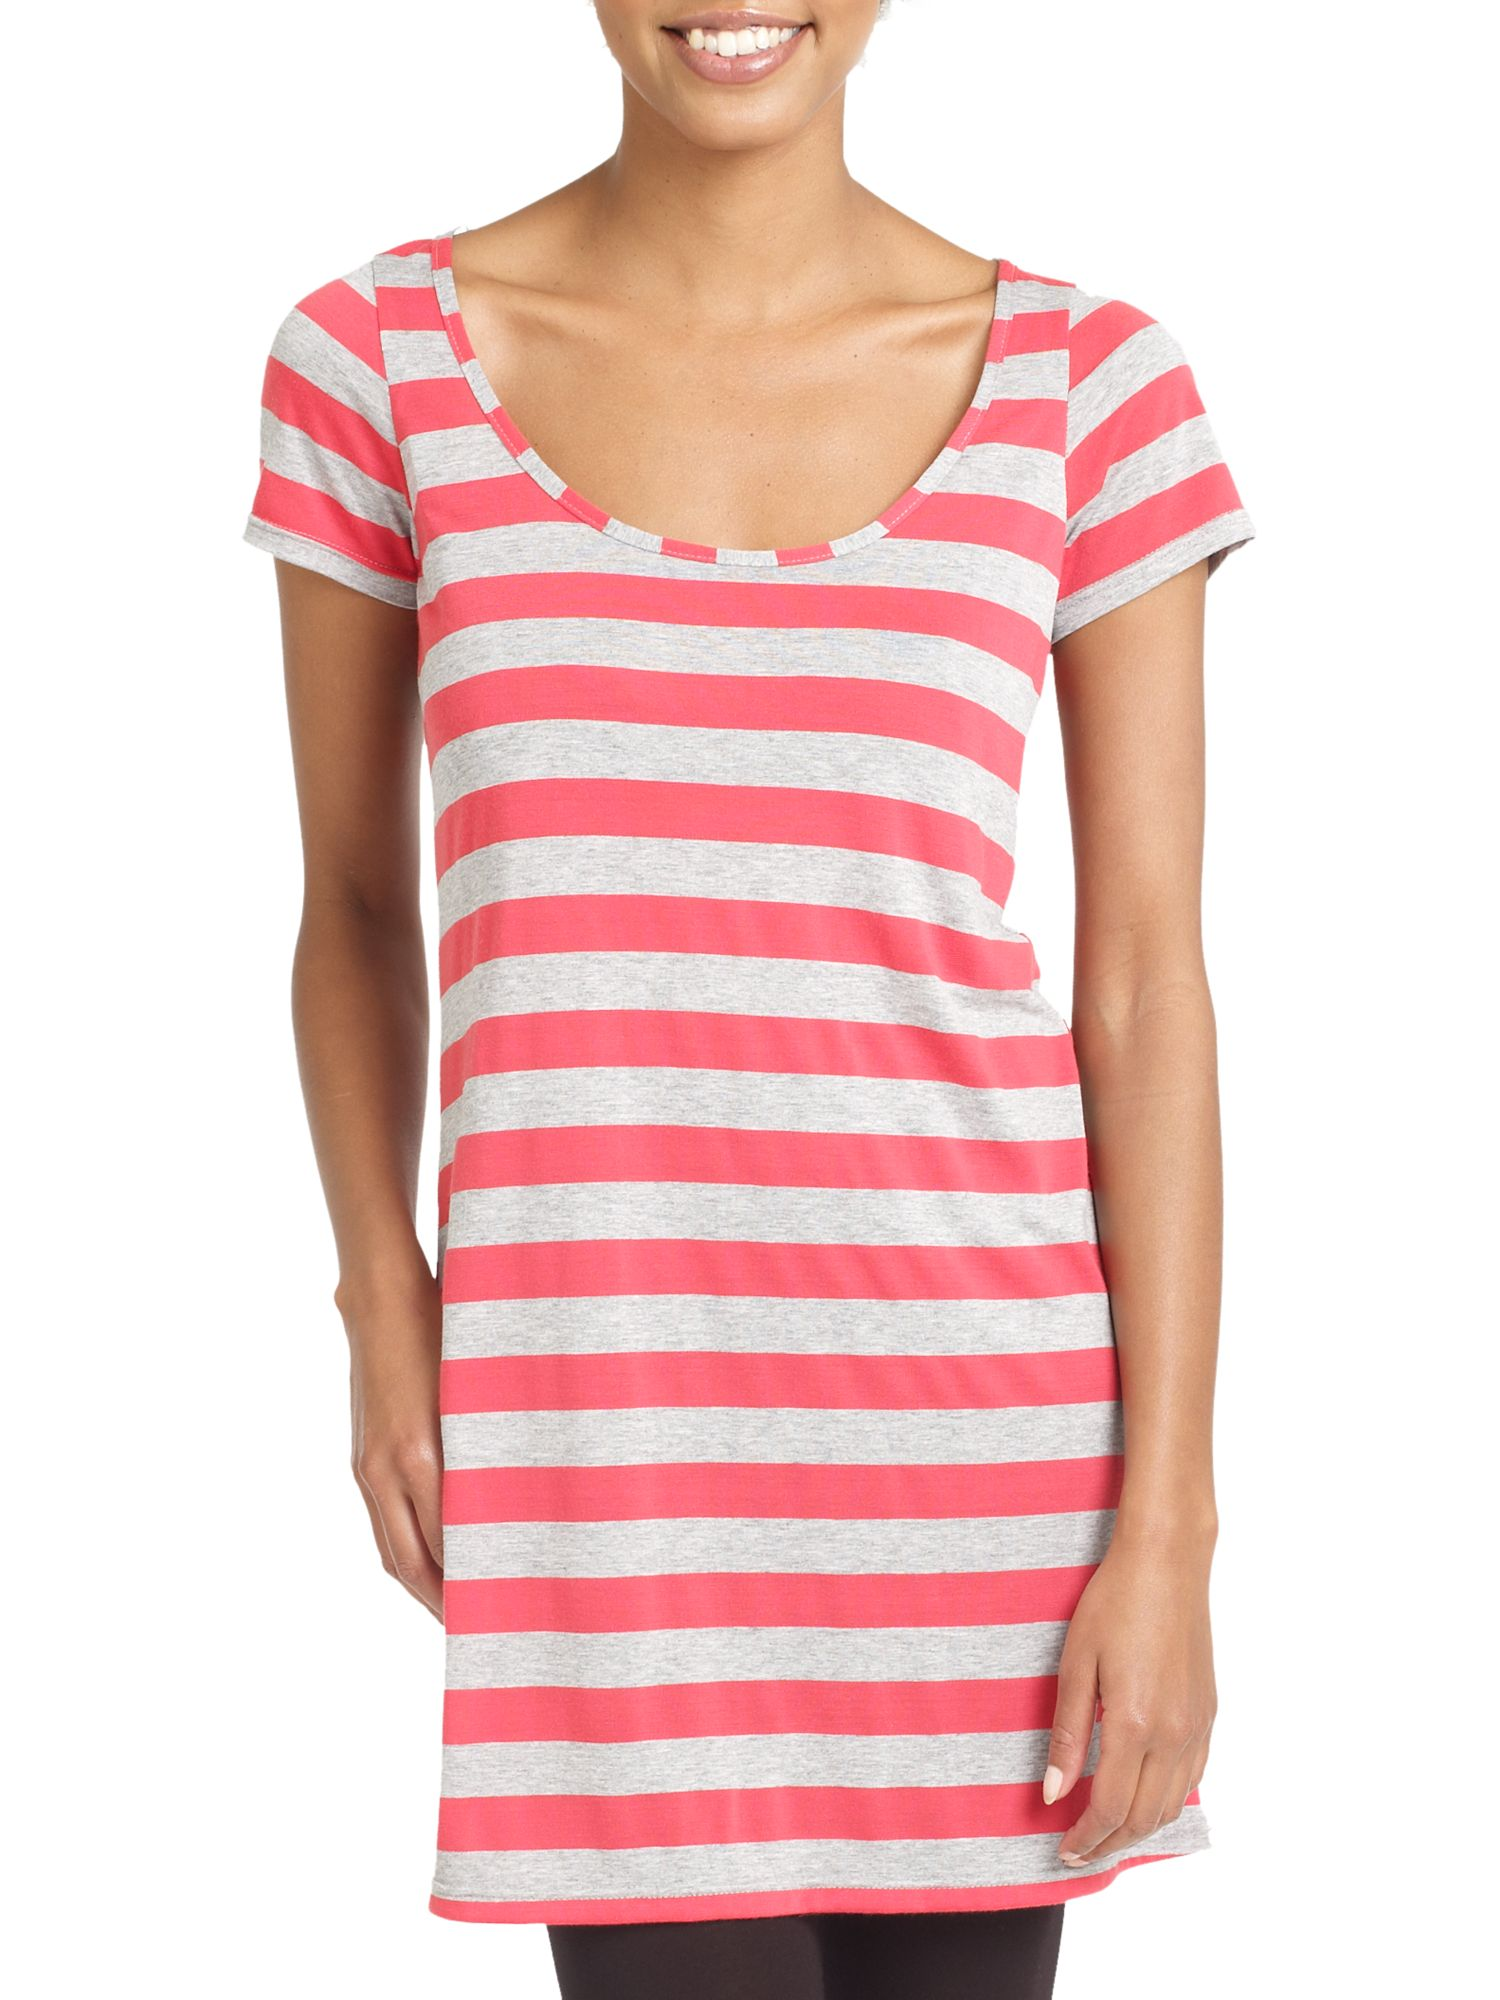 Therapy Stripe t-shirt dress product image